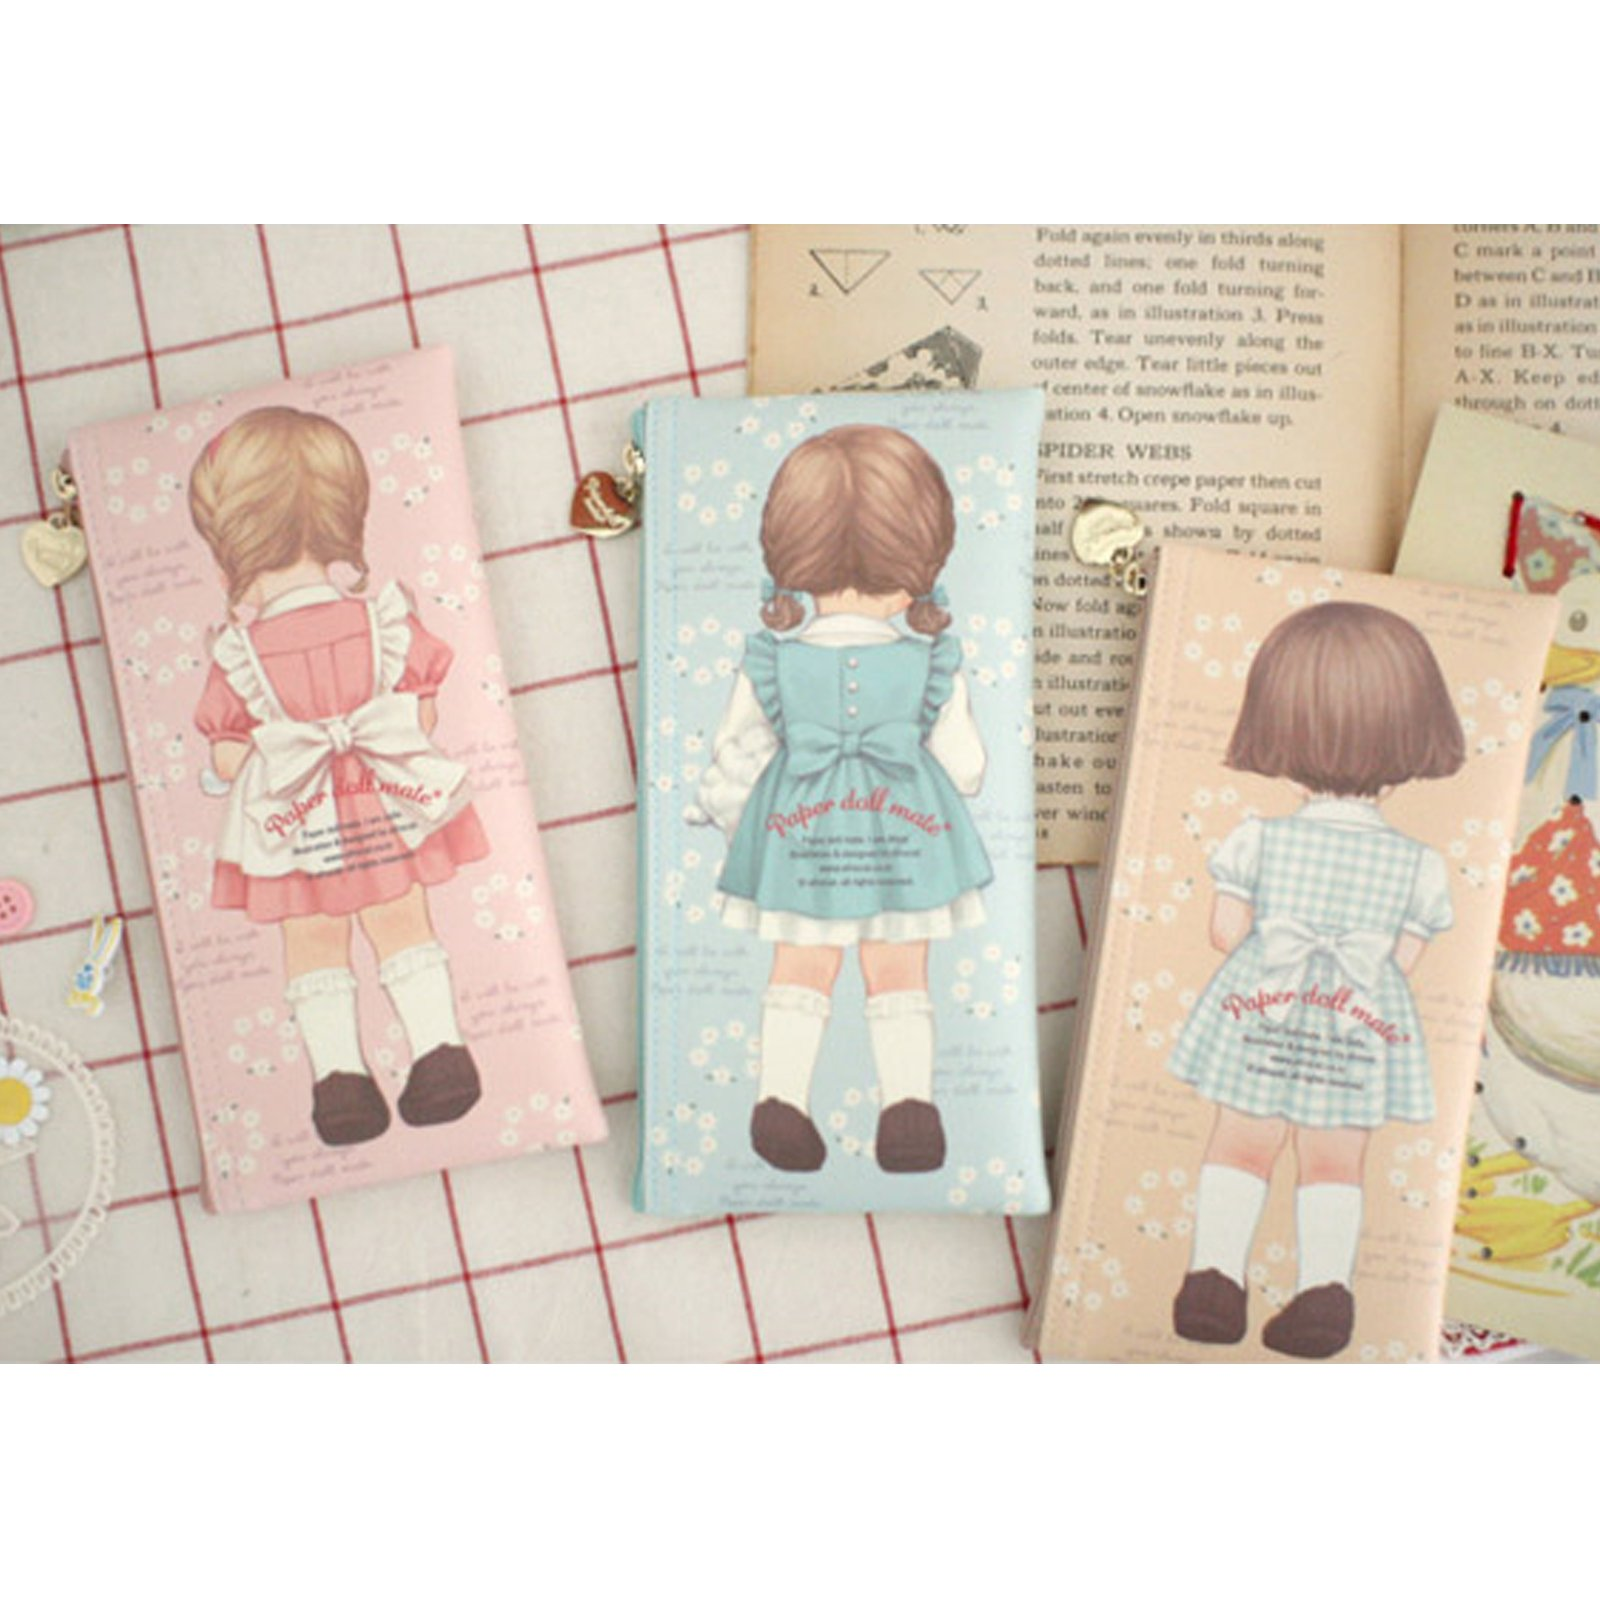 paperdollmate pencase ver007_blooming Alice by paper doll mate (Image #4)